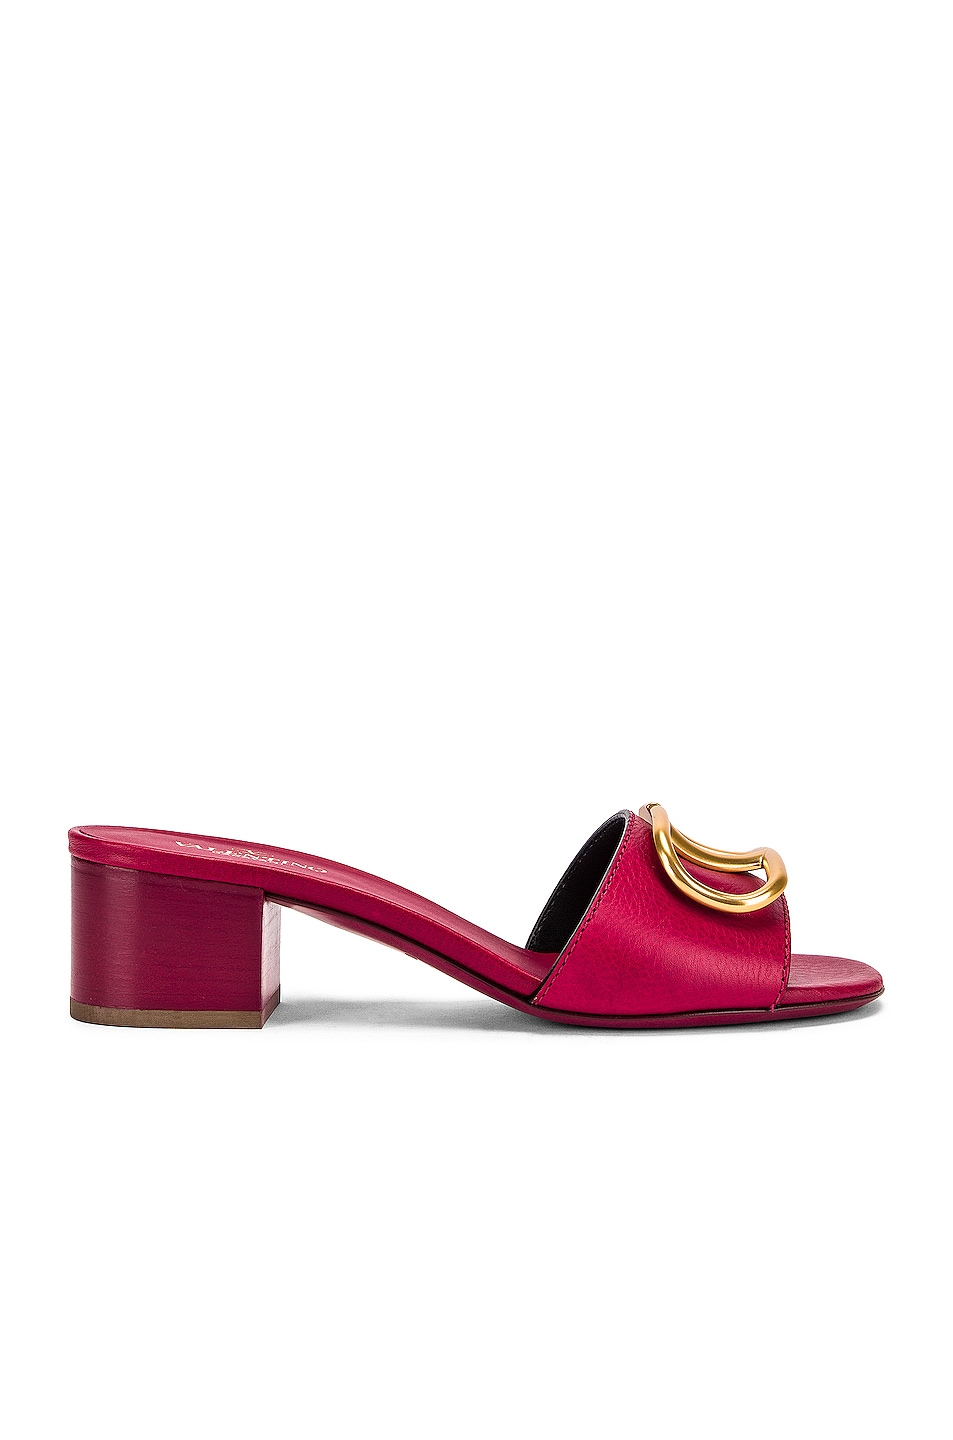 Image 1 of Valentino Vlogo Slides in Raspberry Pink